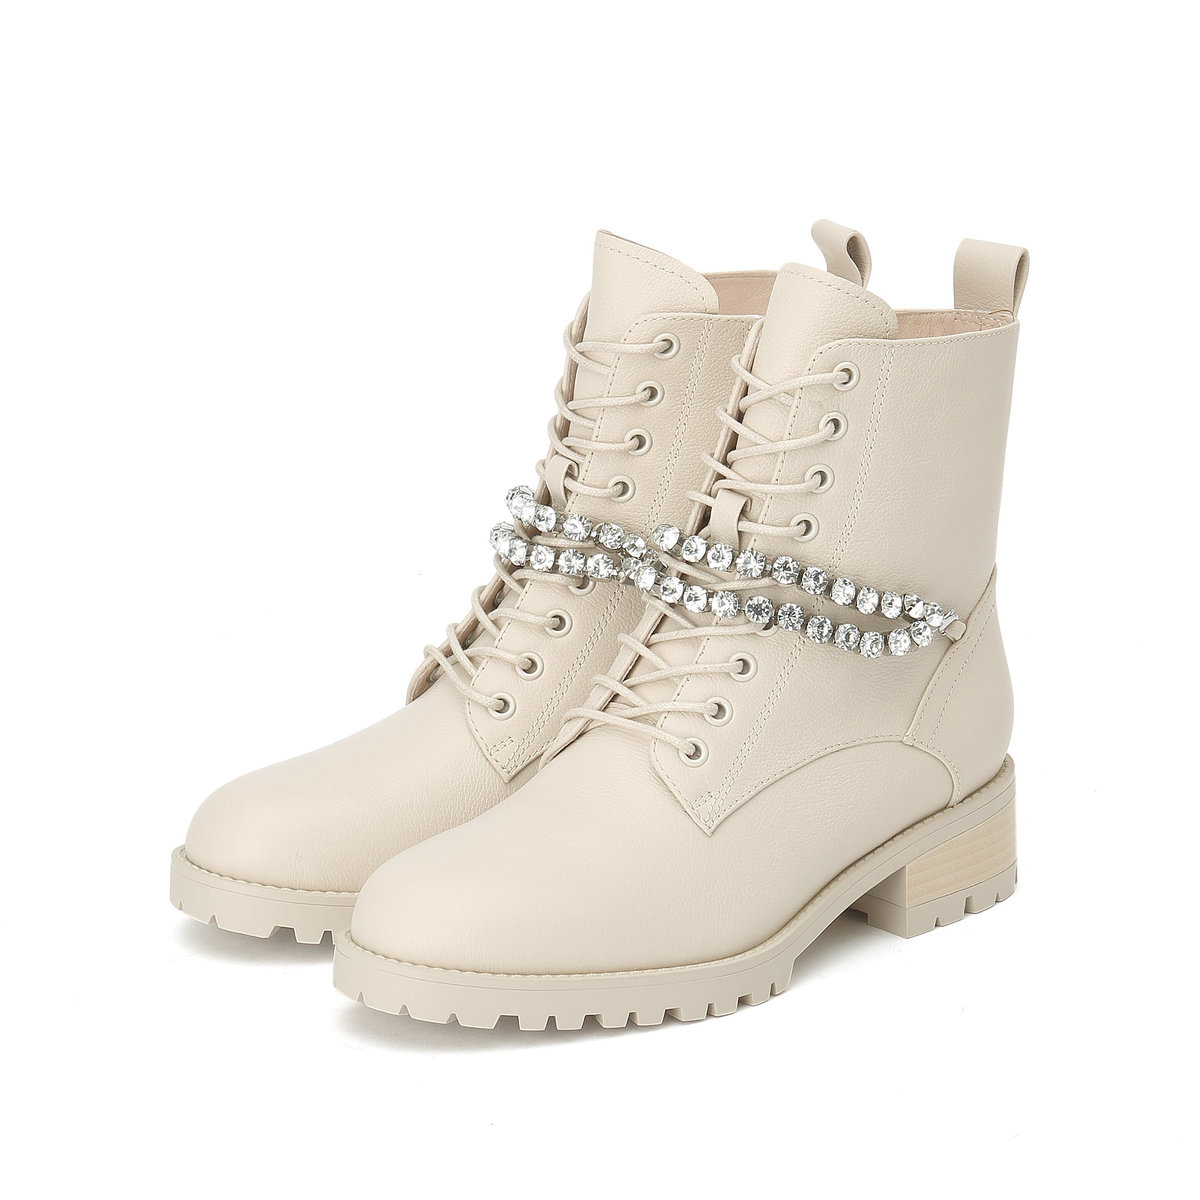 Crystal Chain Lace-up Boots